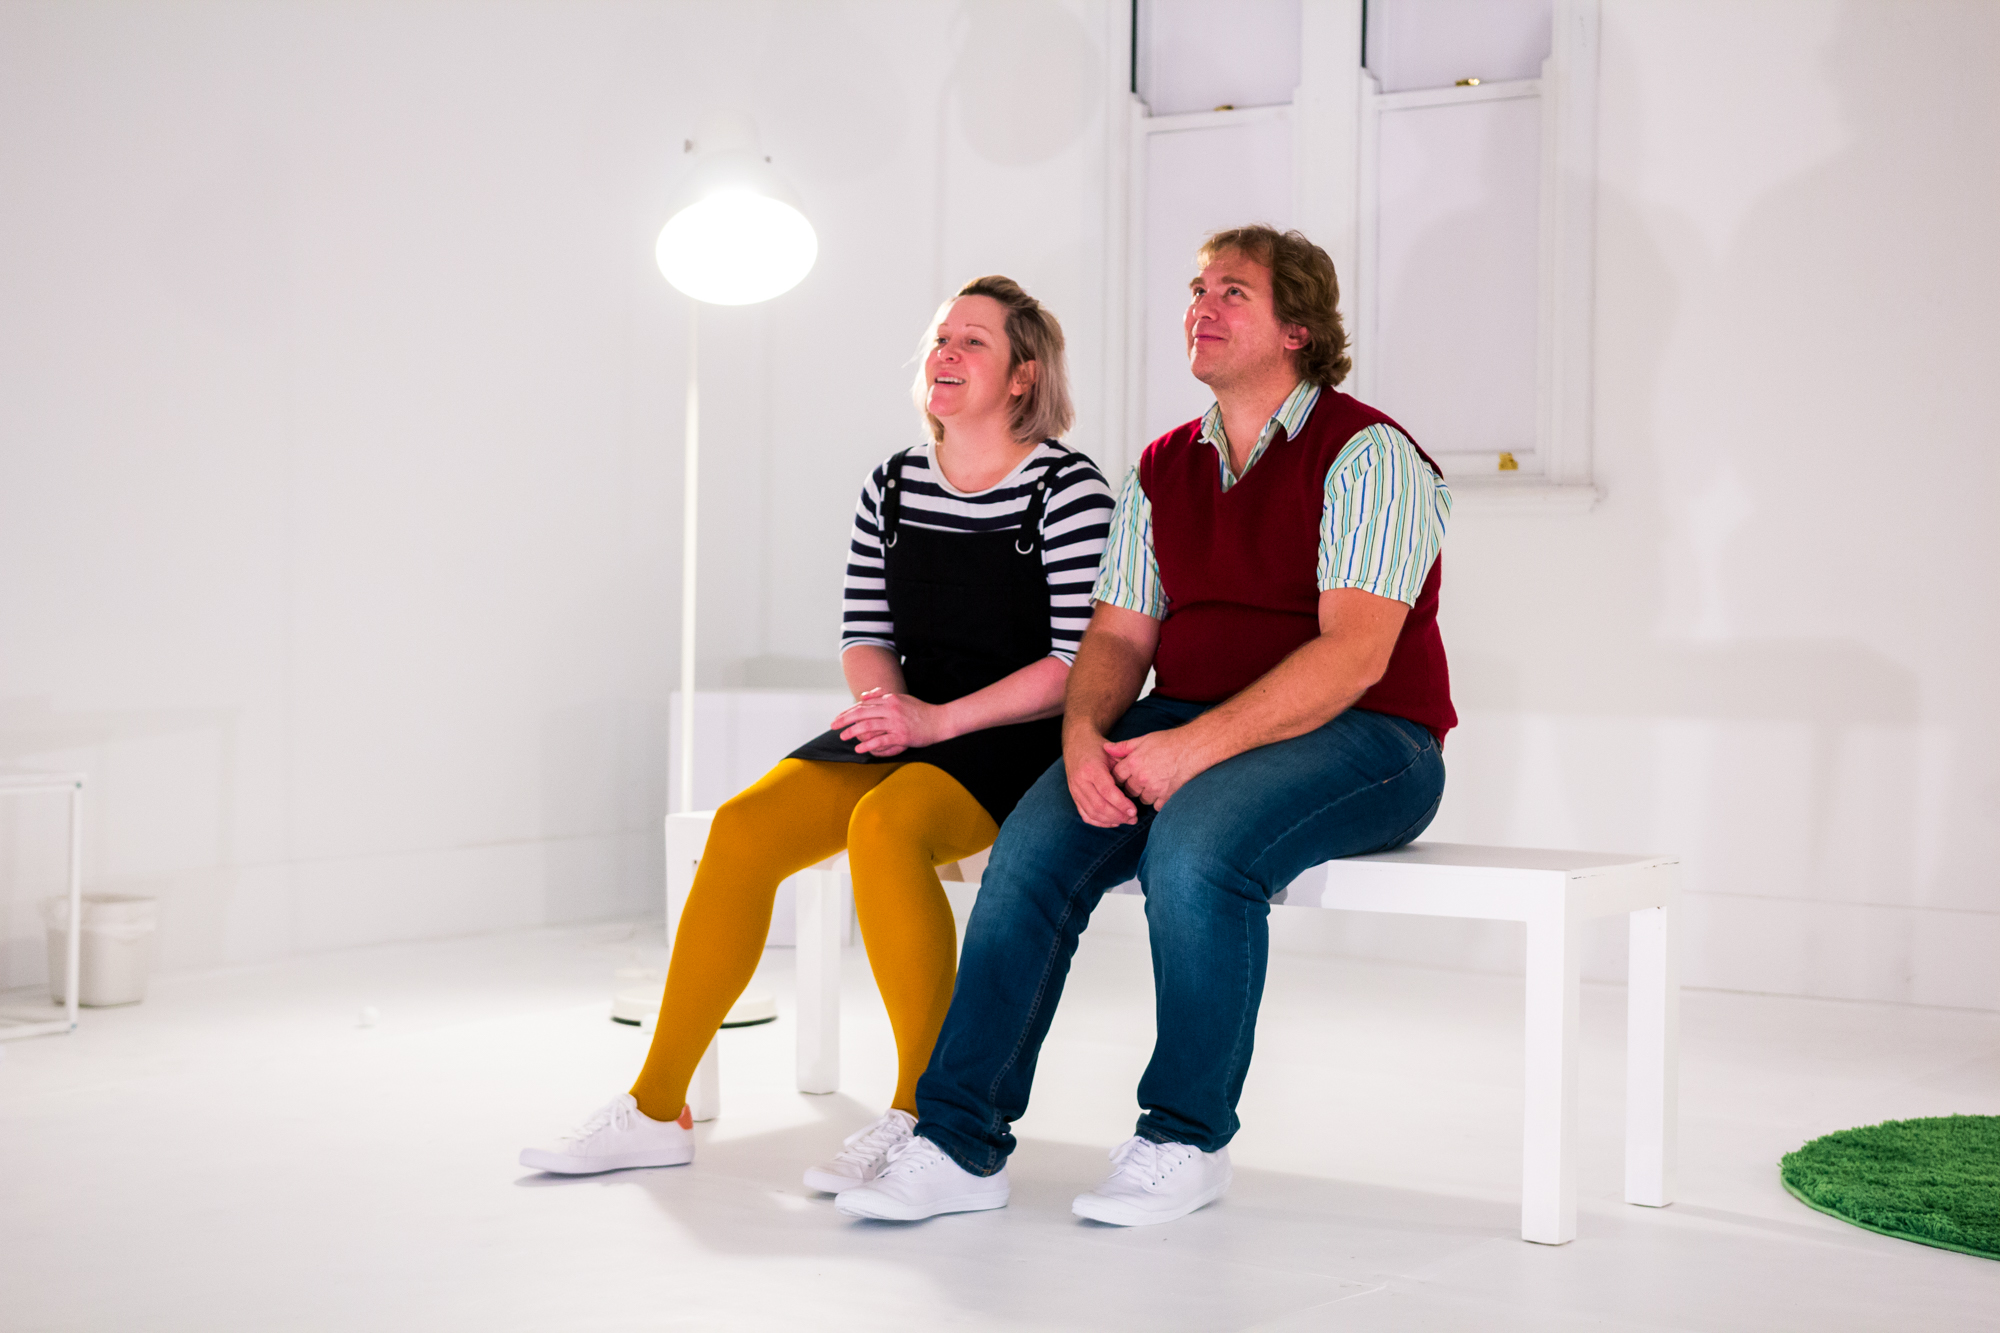 Blink5 - Andrea Gibbs and Sean Walsh in Blink by Phil Porter - image cr Marshall Stay.jpg